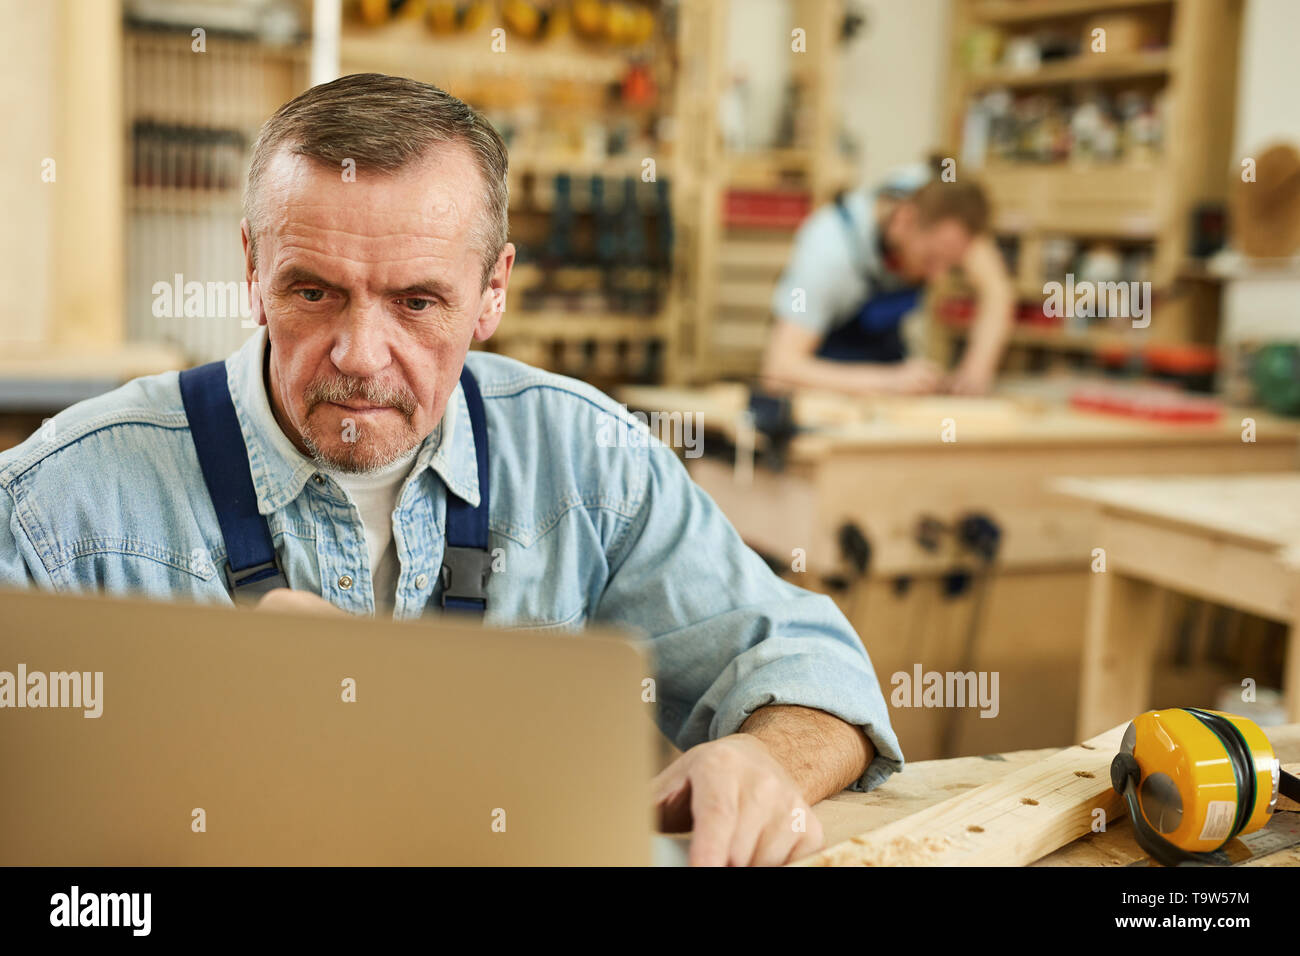 Portrait of senior carpenter using laptop while working in joinery, copy space - Stock Image